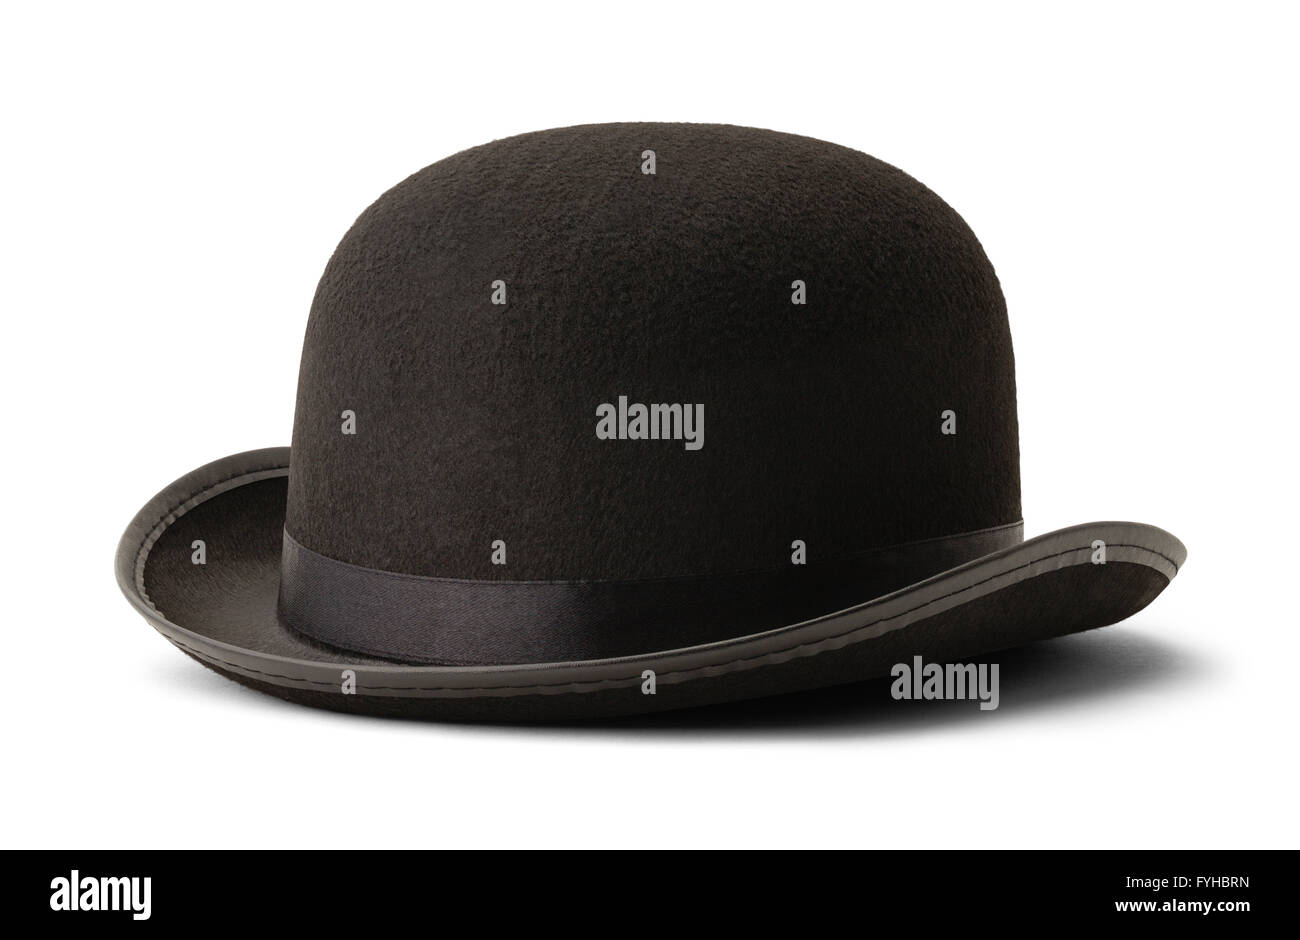 Black Bowler Hat Side View Isolated on White Background. - Stock Image